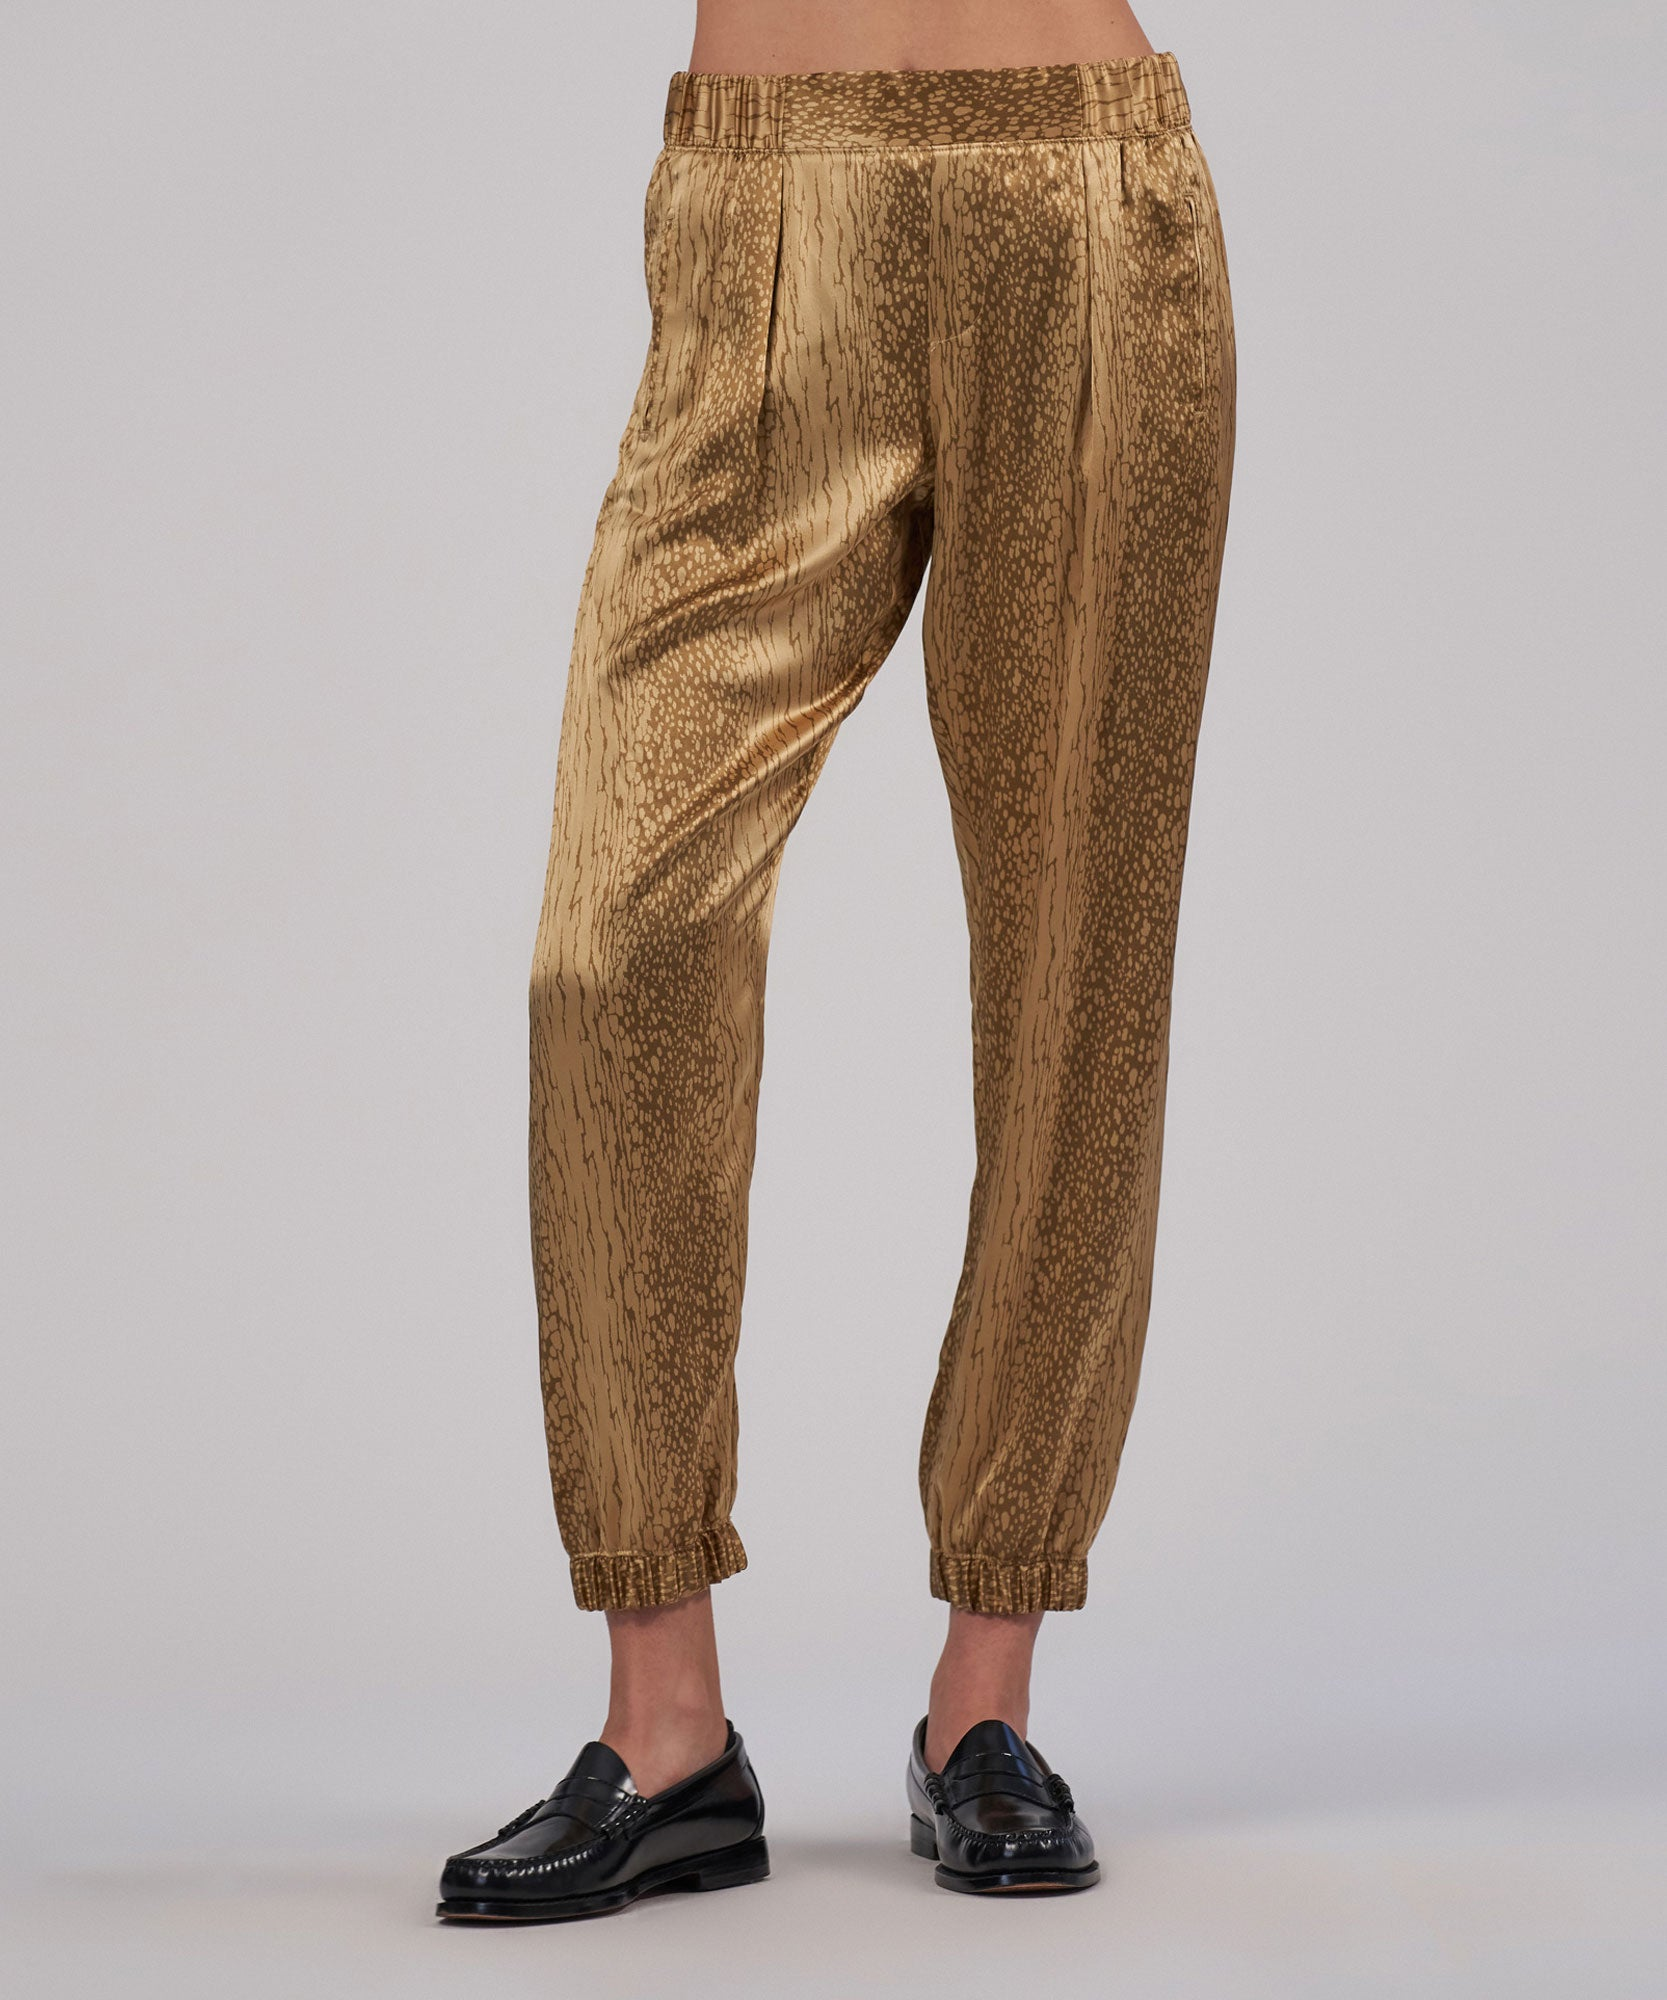 Balsa Cracked Paint Print Silk Pant - Women's Silk Pants by ATM Anthony Thomas Melillo